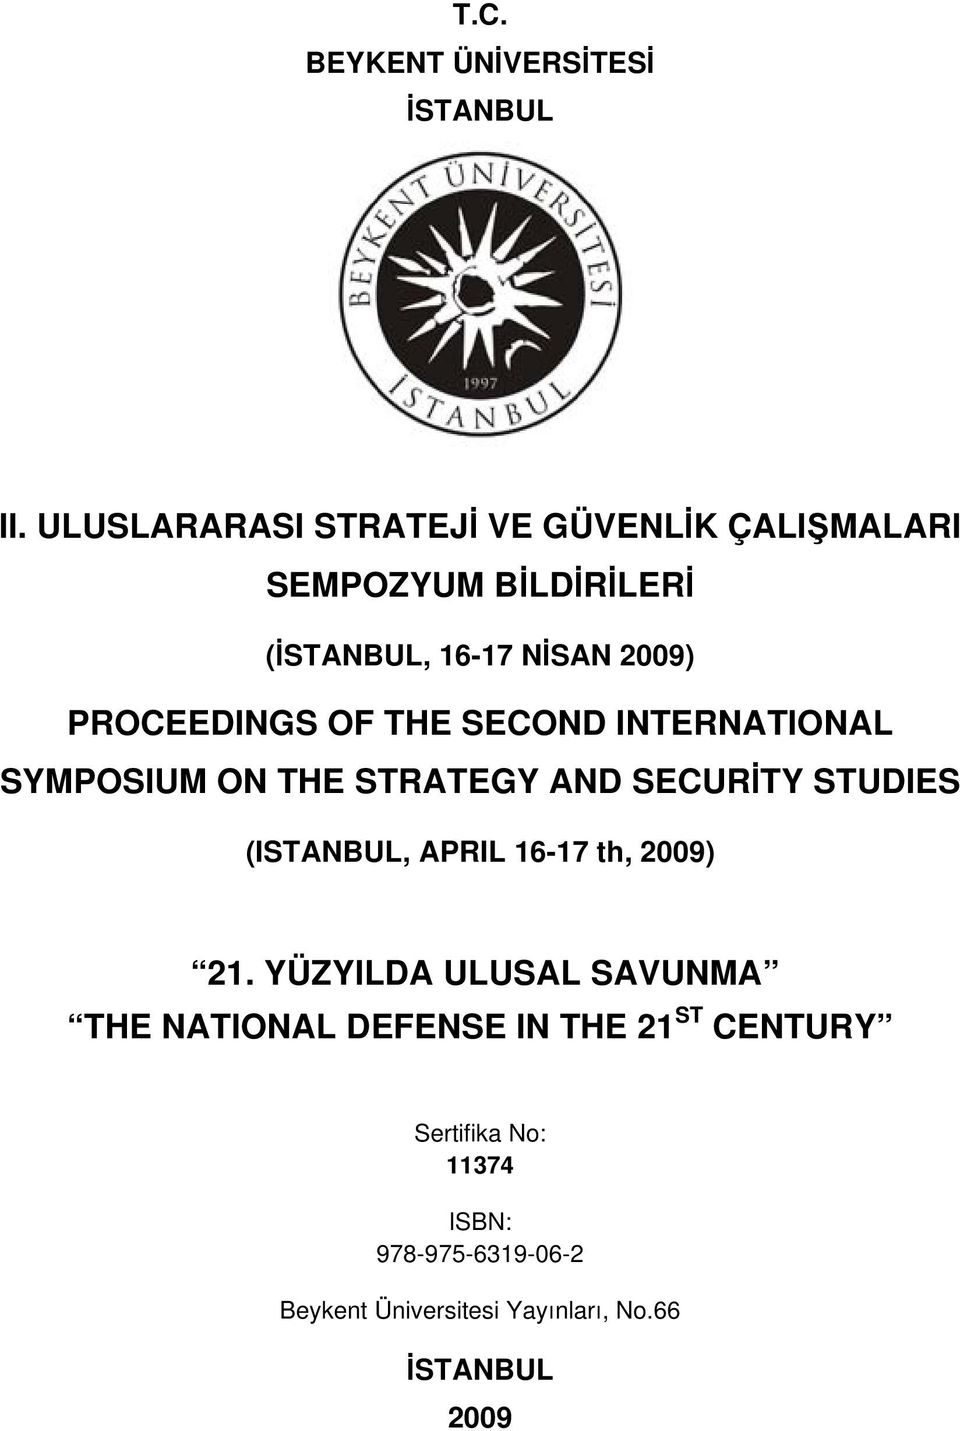 PROCEEDINGS OF THE SECOND INTERNATIONAL SYMPOSIUM ON THE STRATEGY AND SECURİTY STUDIES (ISTANBUL, APRIL